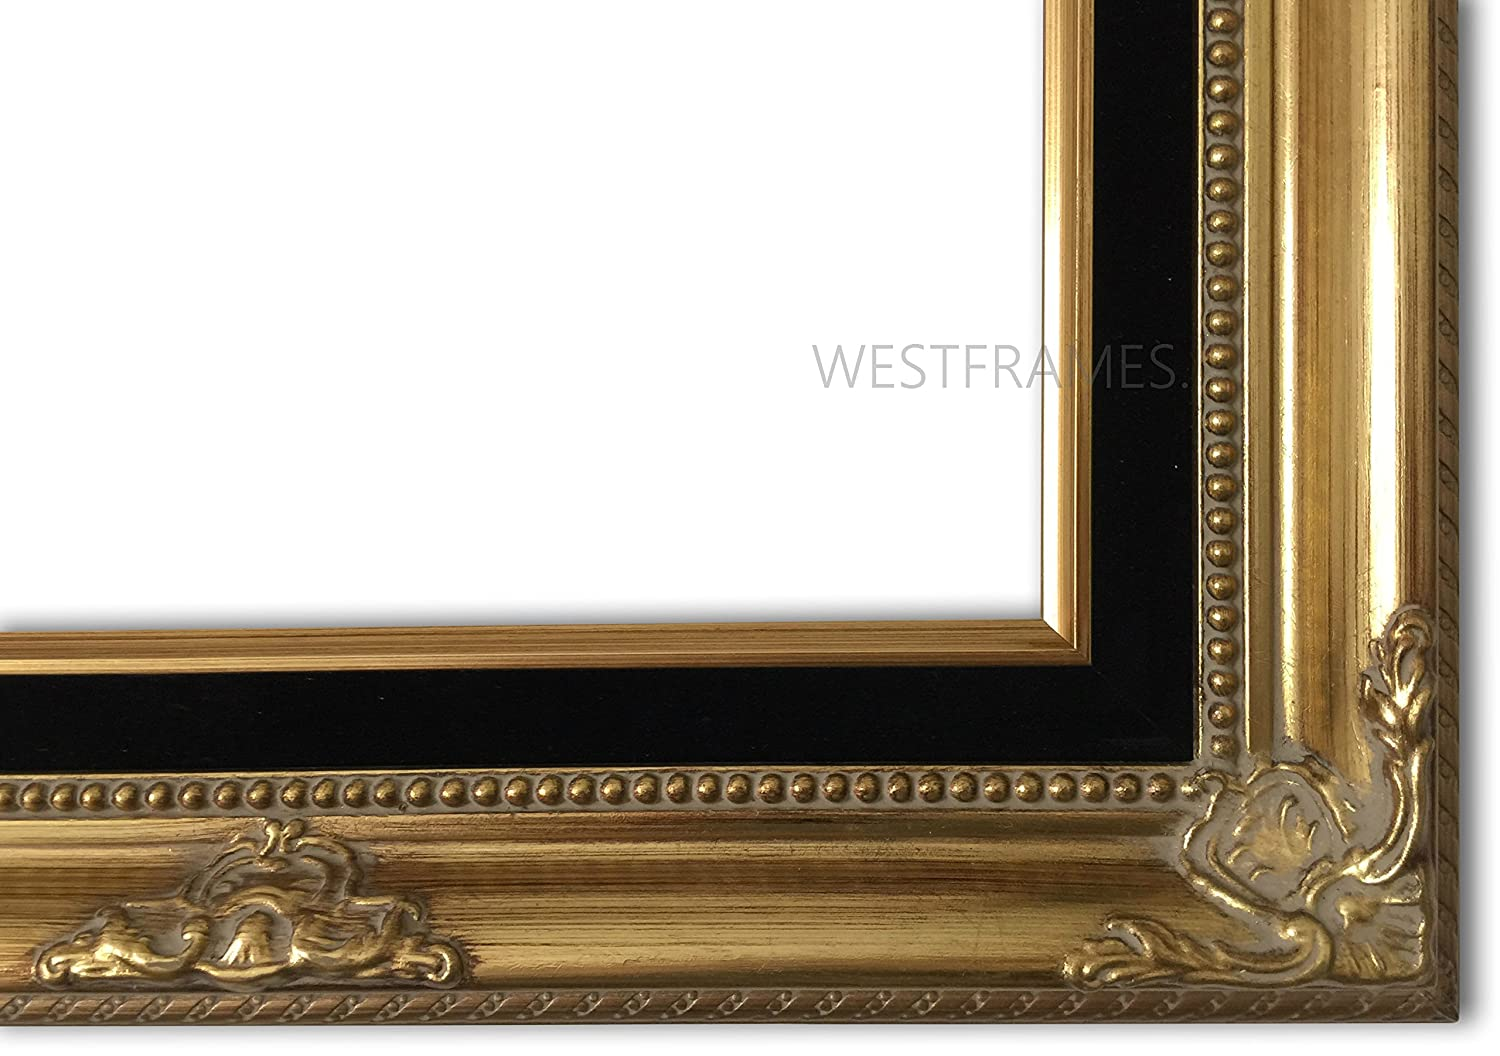 Amazon west frames estelle antique gold leaf wood picture amazon west frames estelle antique gold leaf wood picture frame with black velveteen liner 11 x 14 jeuxipadfo Images